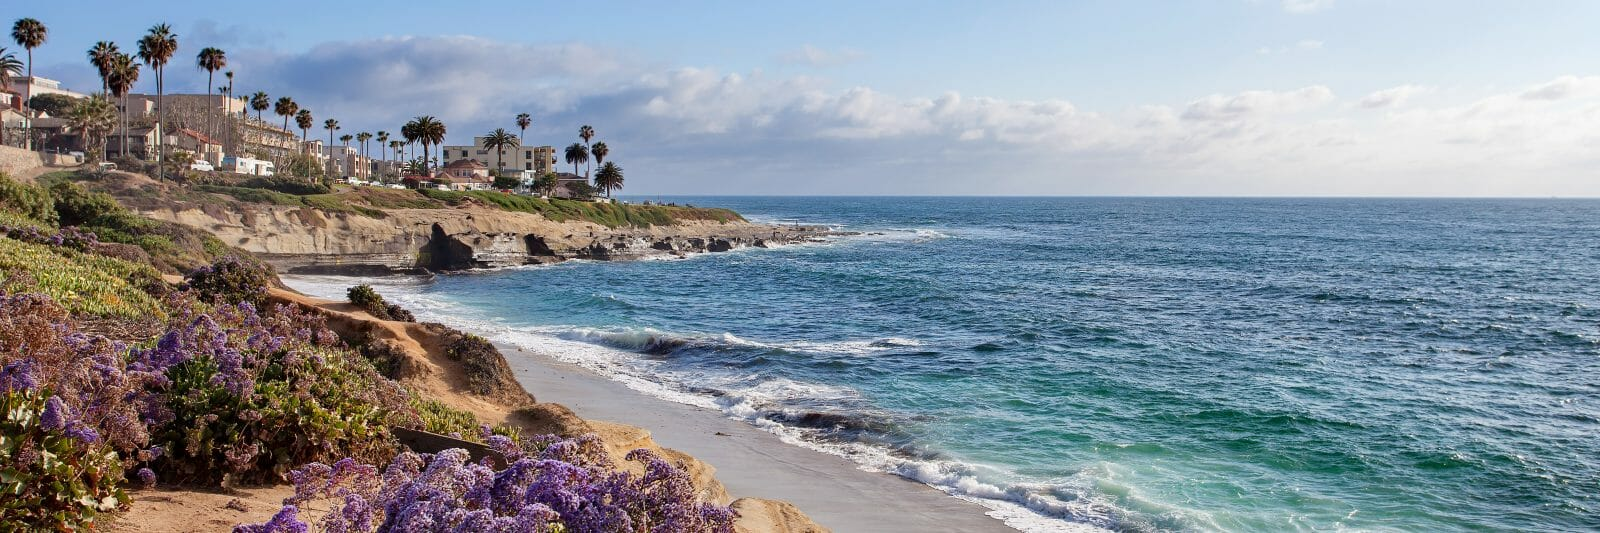 La Jolla Shore with ocean on a sunny day